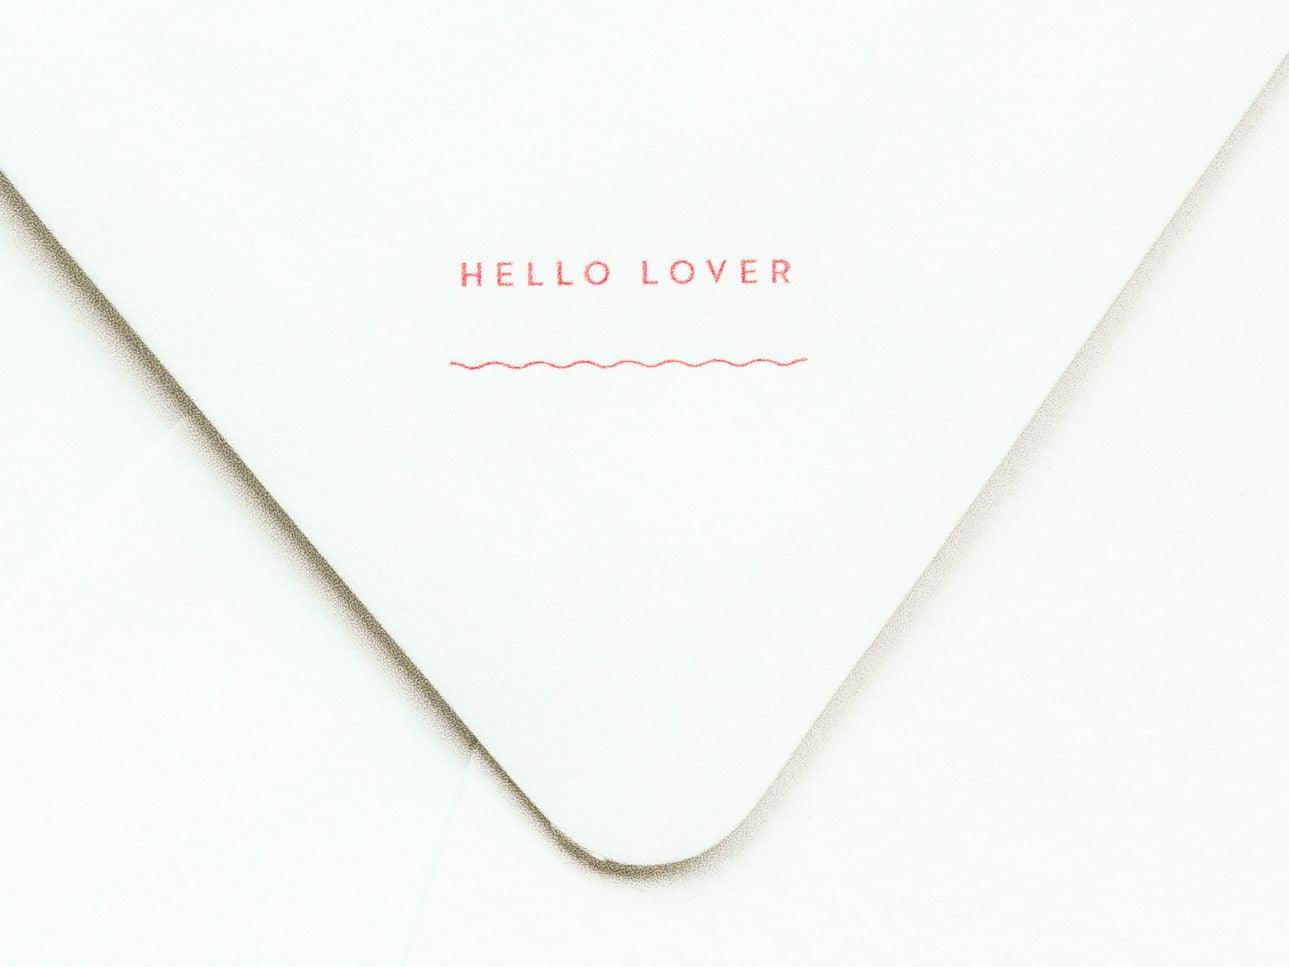 Hello Lover Notevelope & Bra or Briefs Notecard